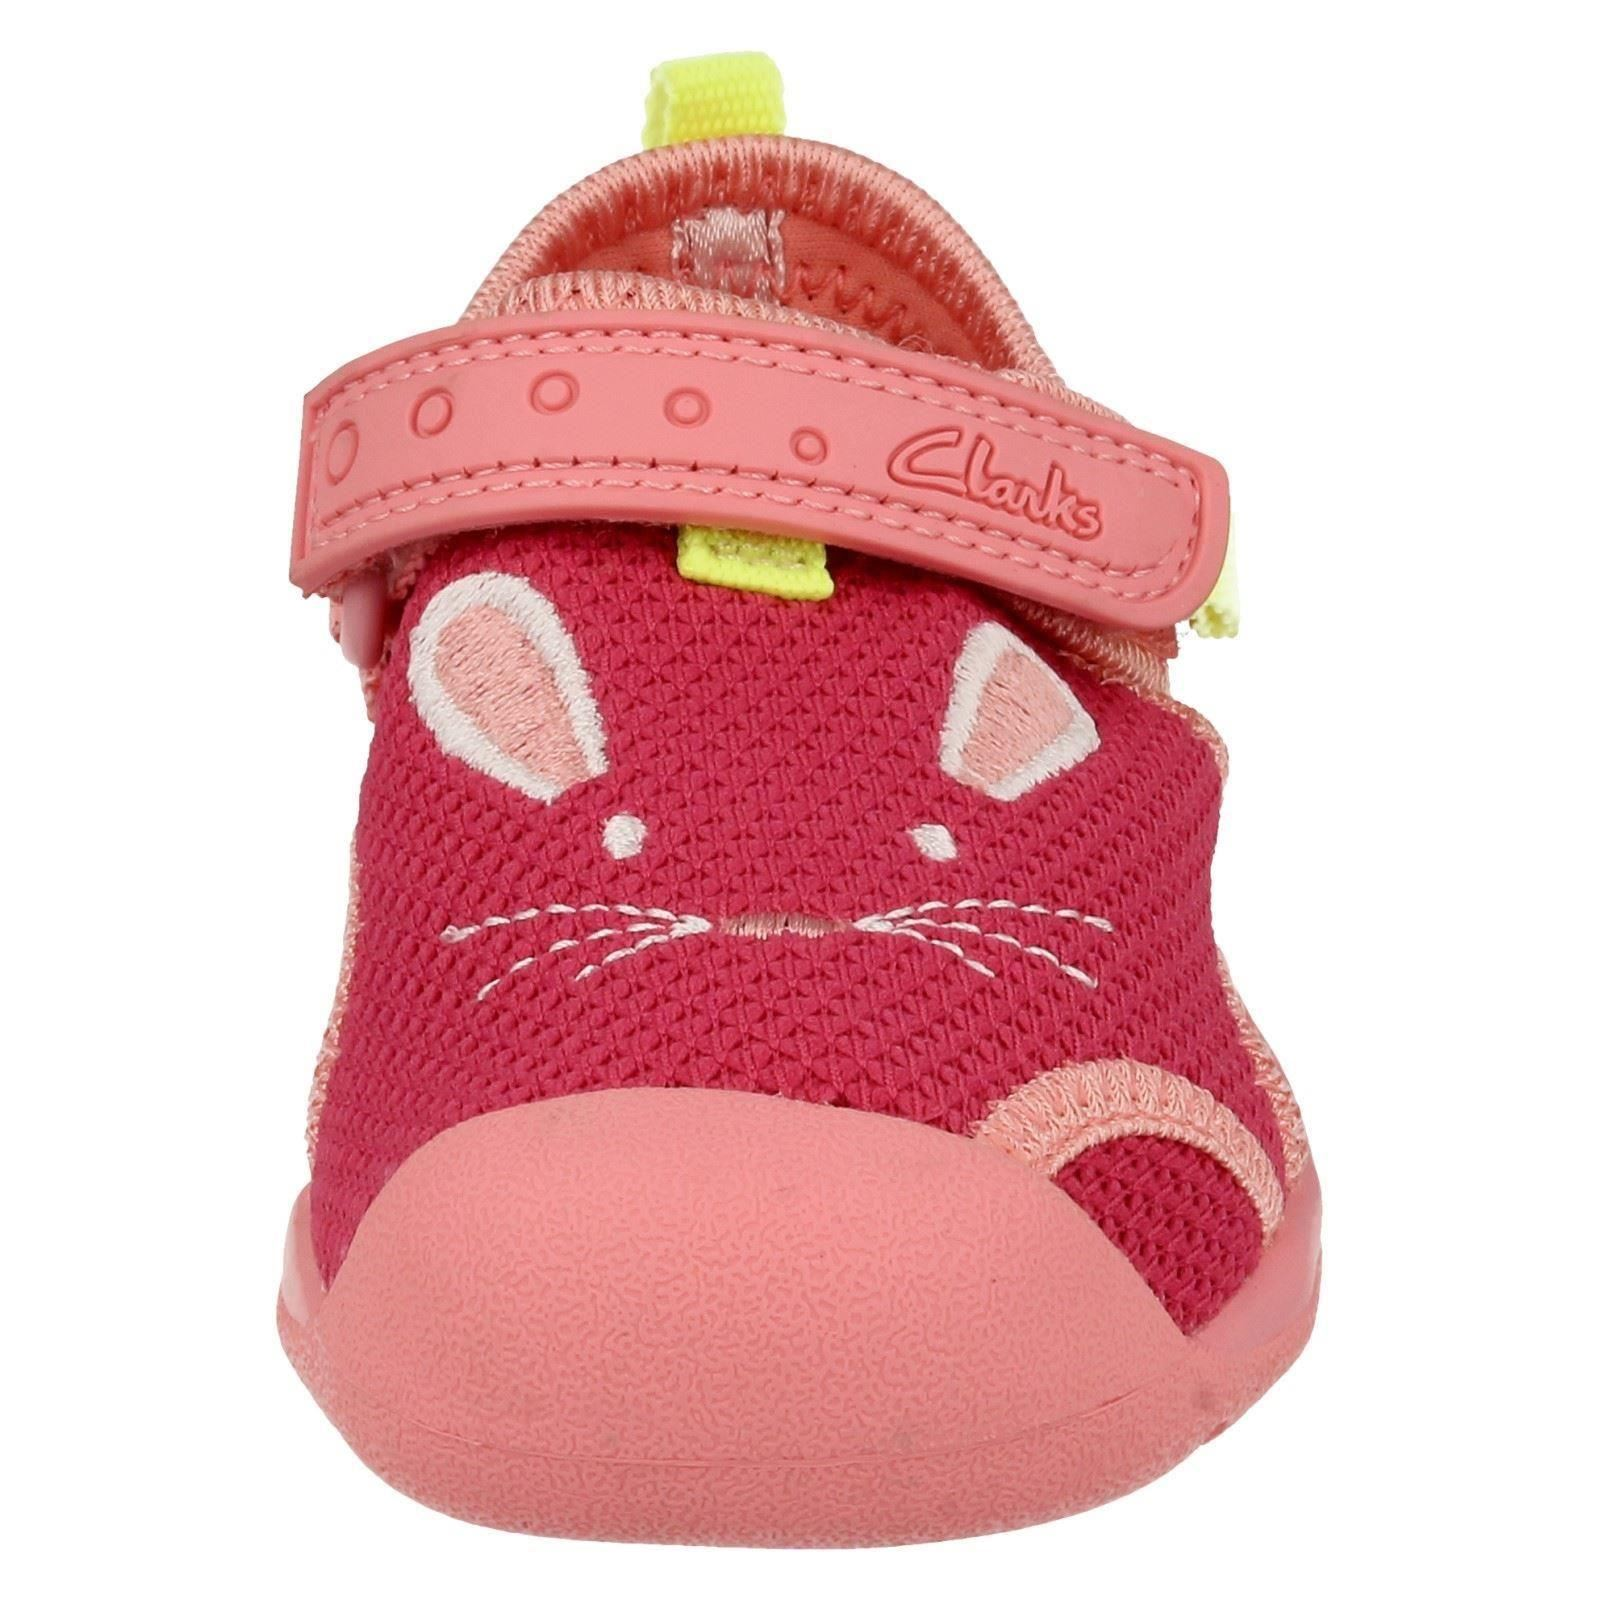 Infantil Chicas Clarks Zapatos De Playa Playa Molly